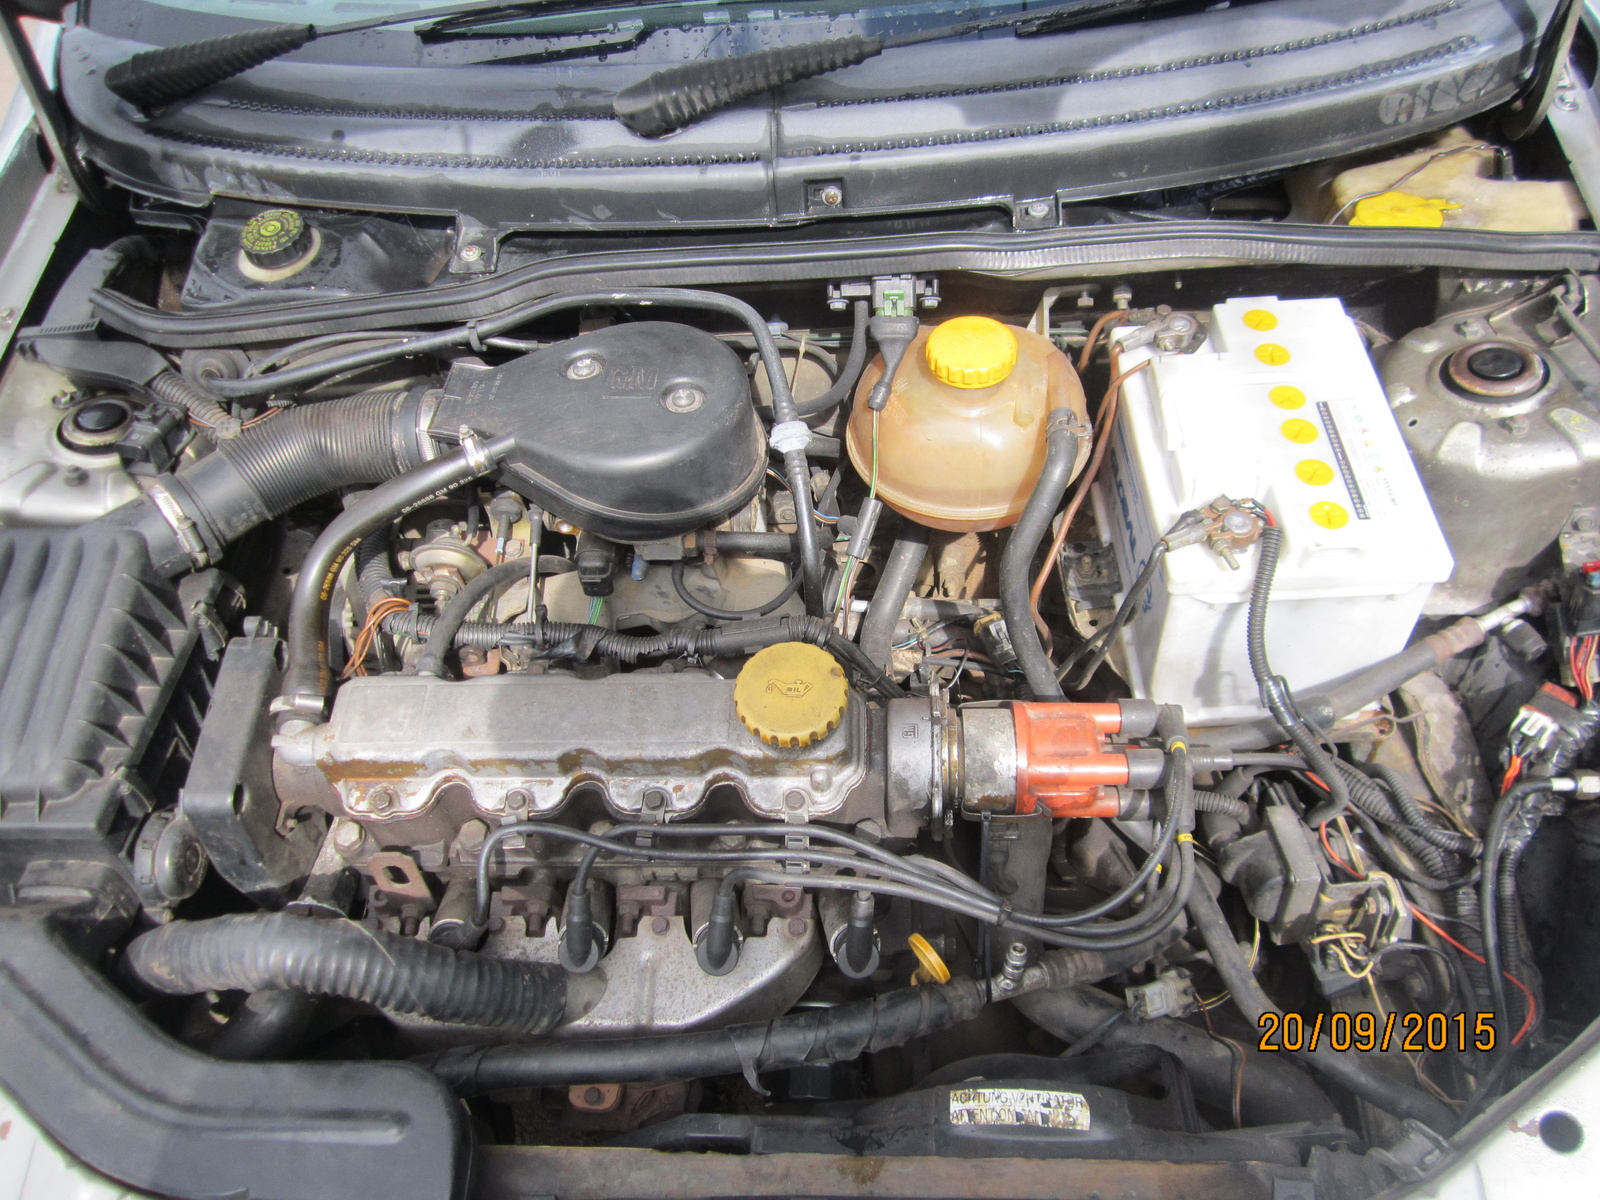 I Serviced Injector Distributor And Replaced Spark Plugs And Fuel Filter But The Problem Is Still There Please Help Me